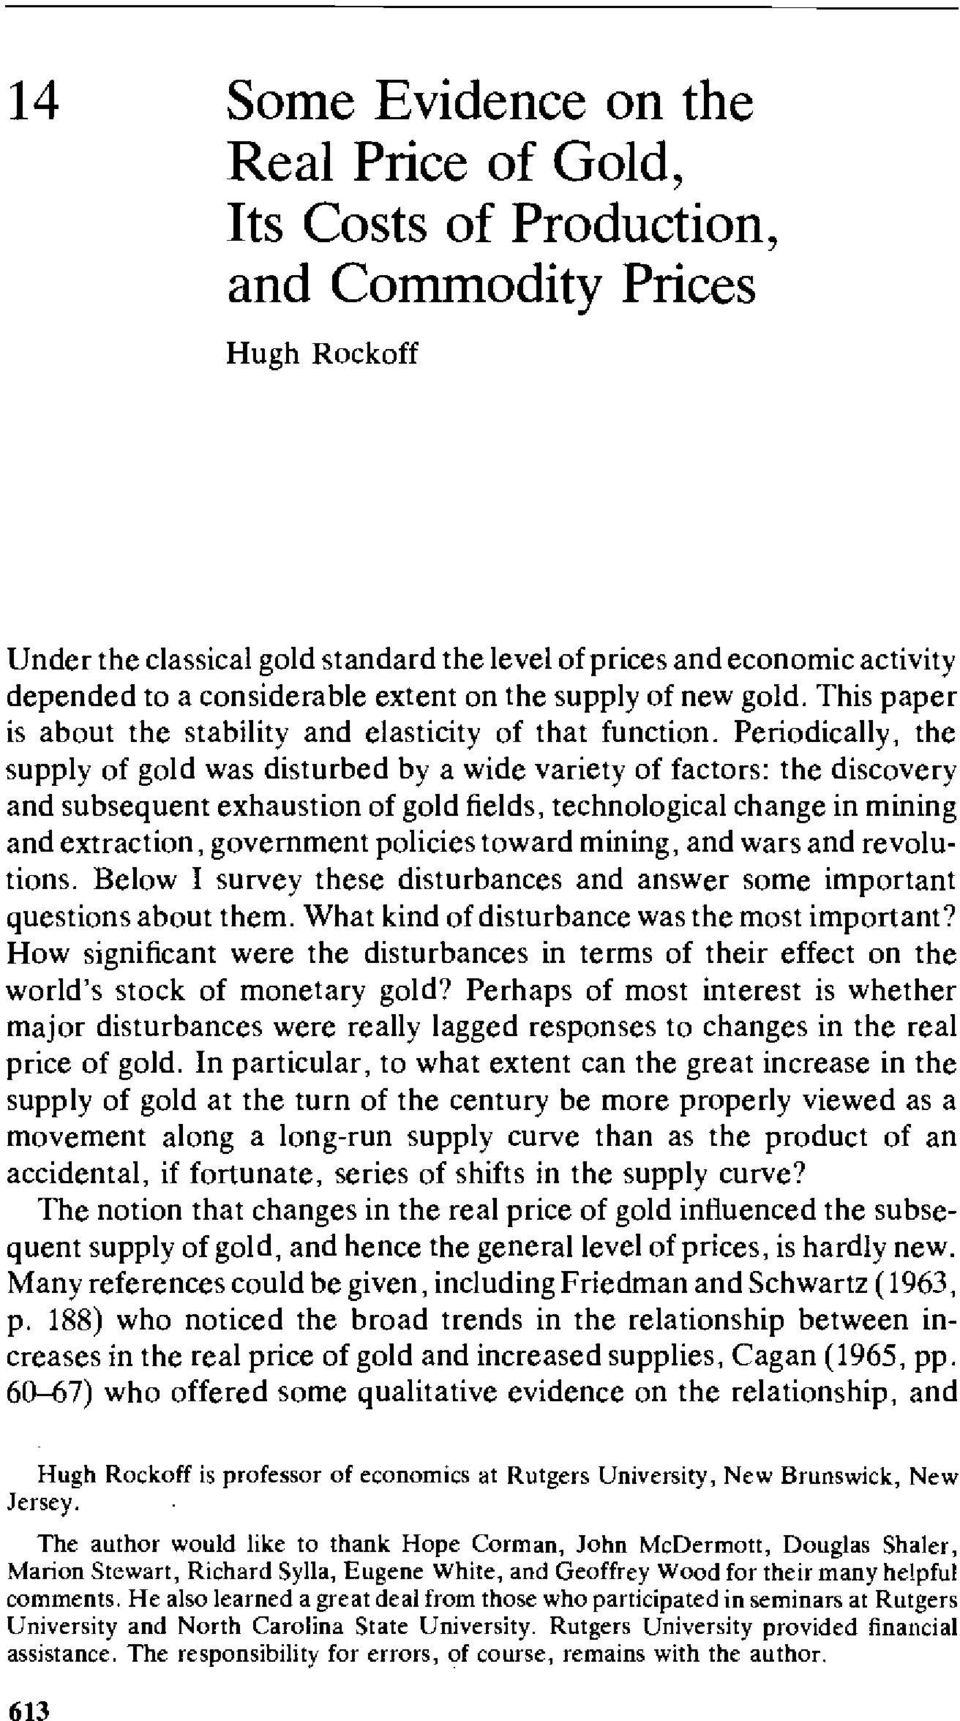 Periodically, the supply of gold was disturbed by a wide variety of factors: the discovery and subsequent exhaustion of gold fields, technological change in mining and extraction, government policies